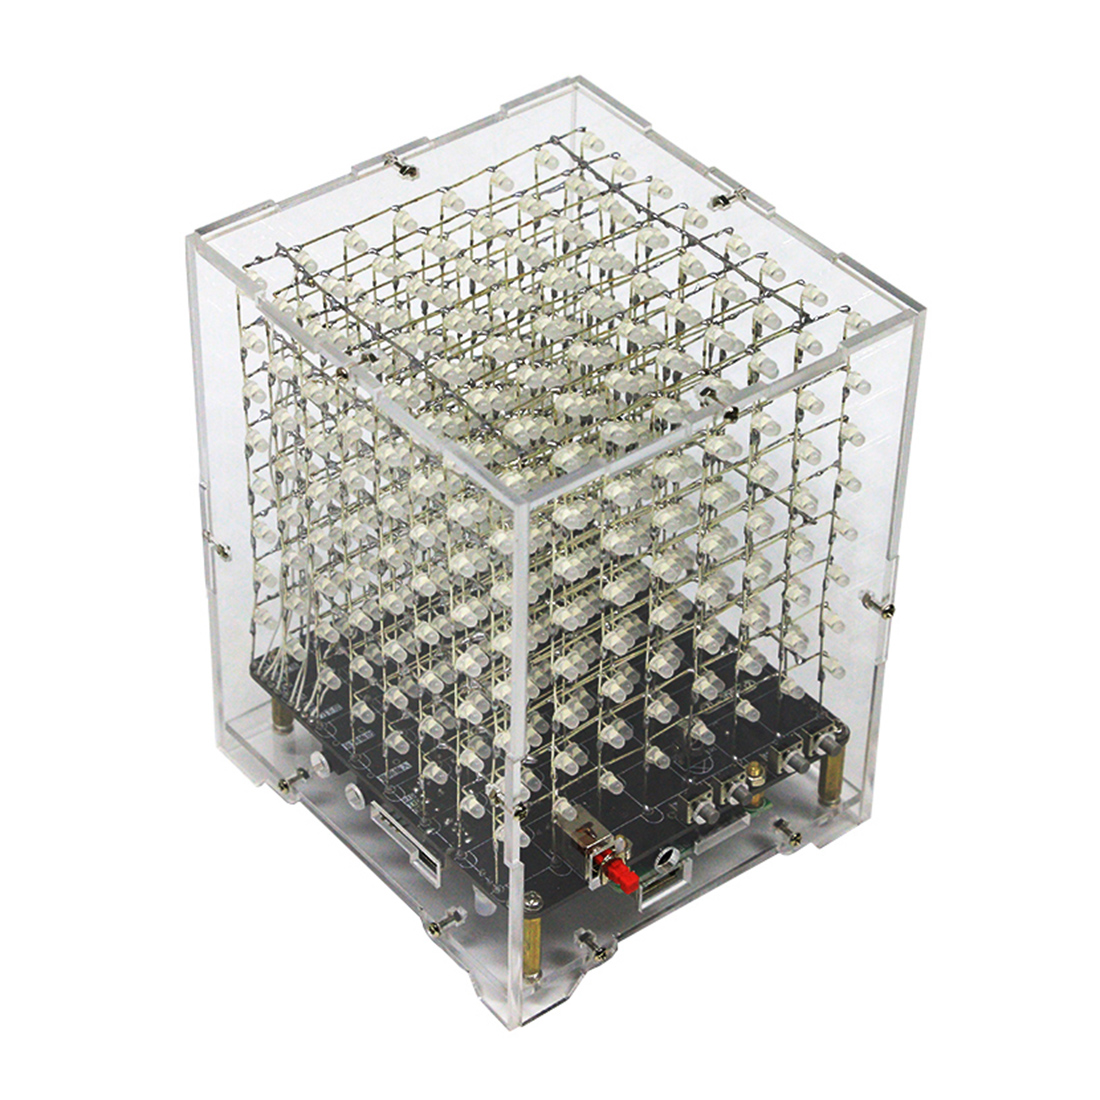 DIY Welding Electronic Bulk Parts Bluetooth Light Cube Kit ( Horn, Remote Control, 7 Colours Changing, Shell, Rechargeable)